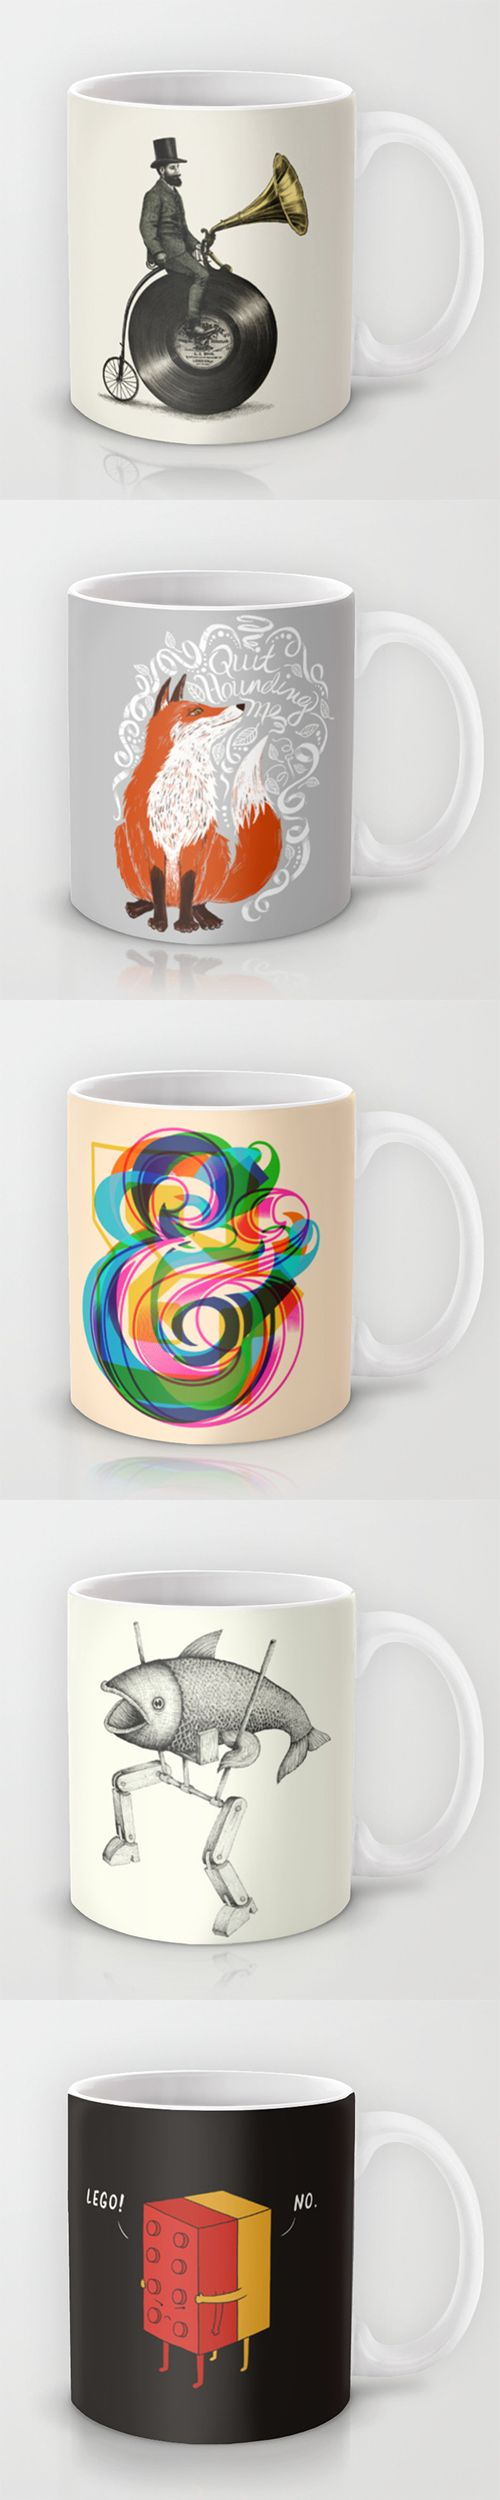 Mugs And Millions Of Other Products Available At Society6.com Today. Every  Purchase Supports